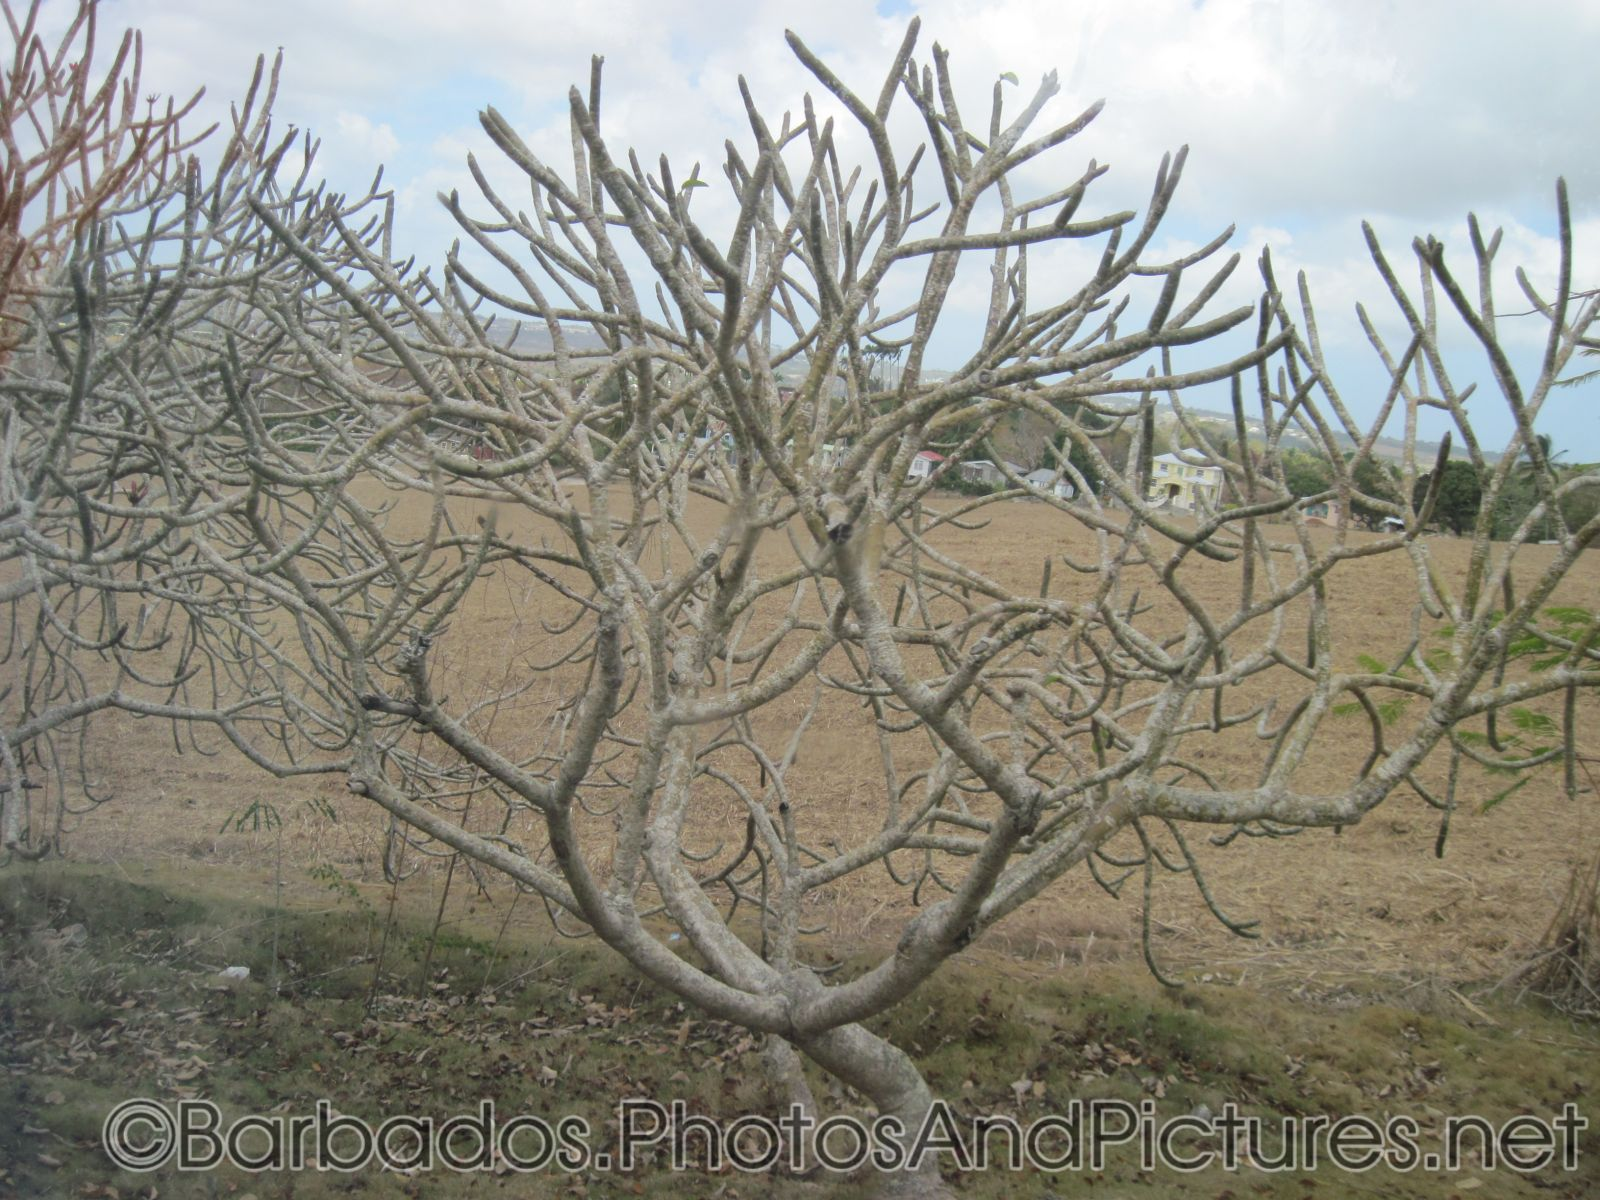 Tree without leaves in Barbados.jpg